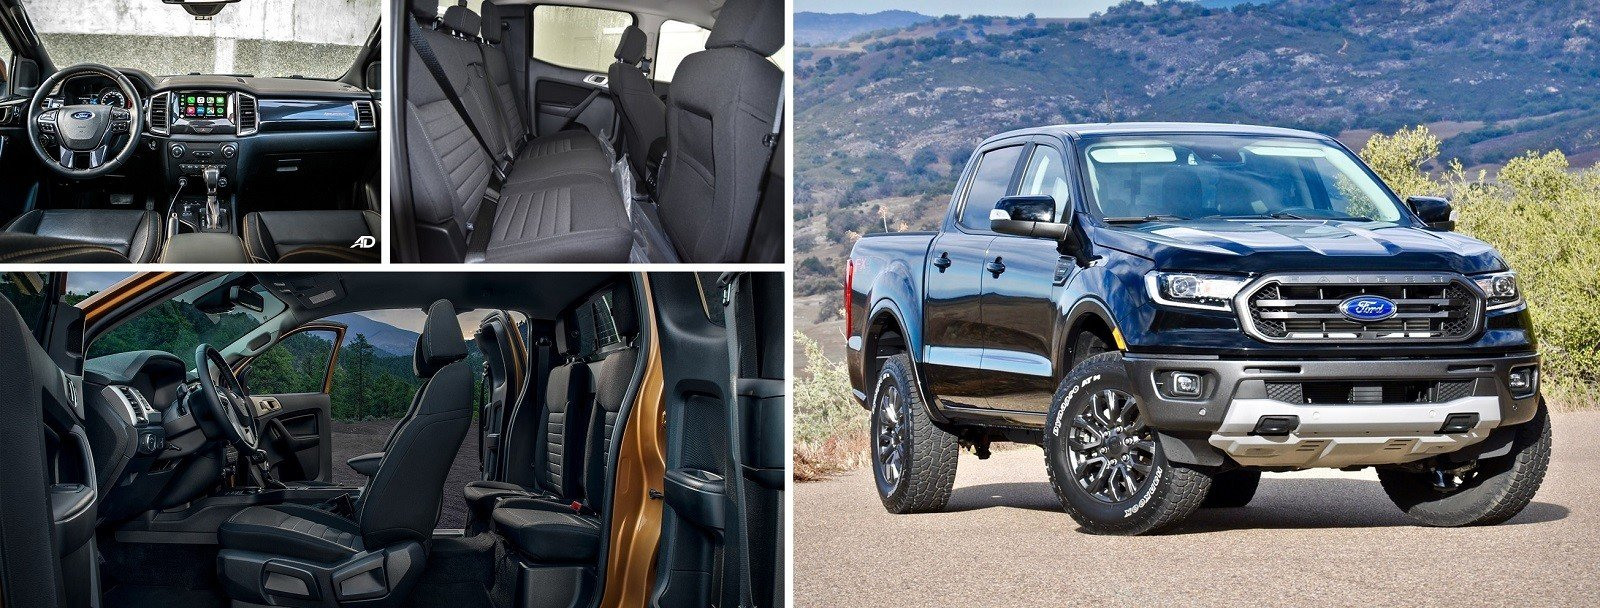 Ford Ranger 2020 interior and exterior